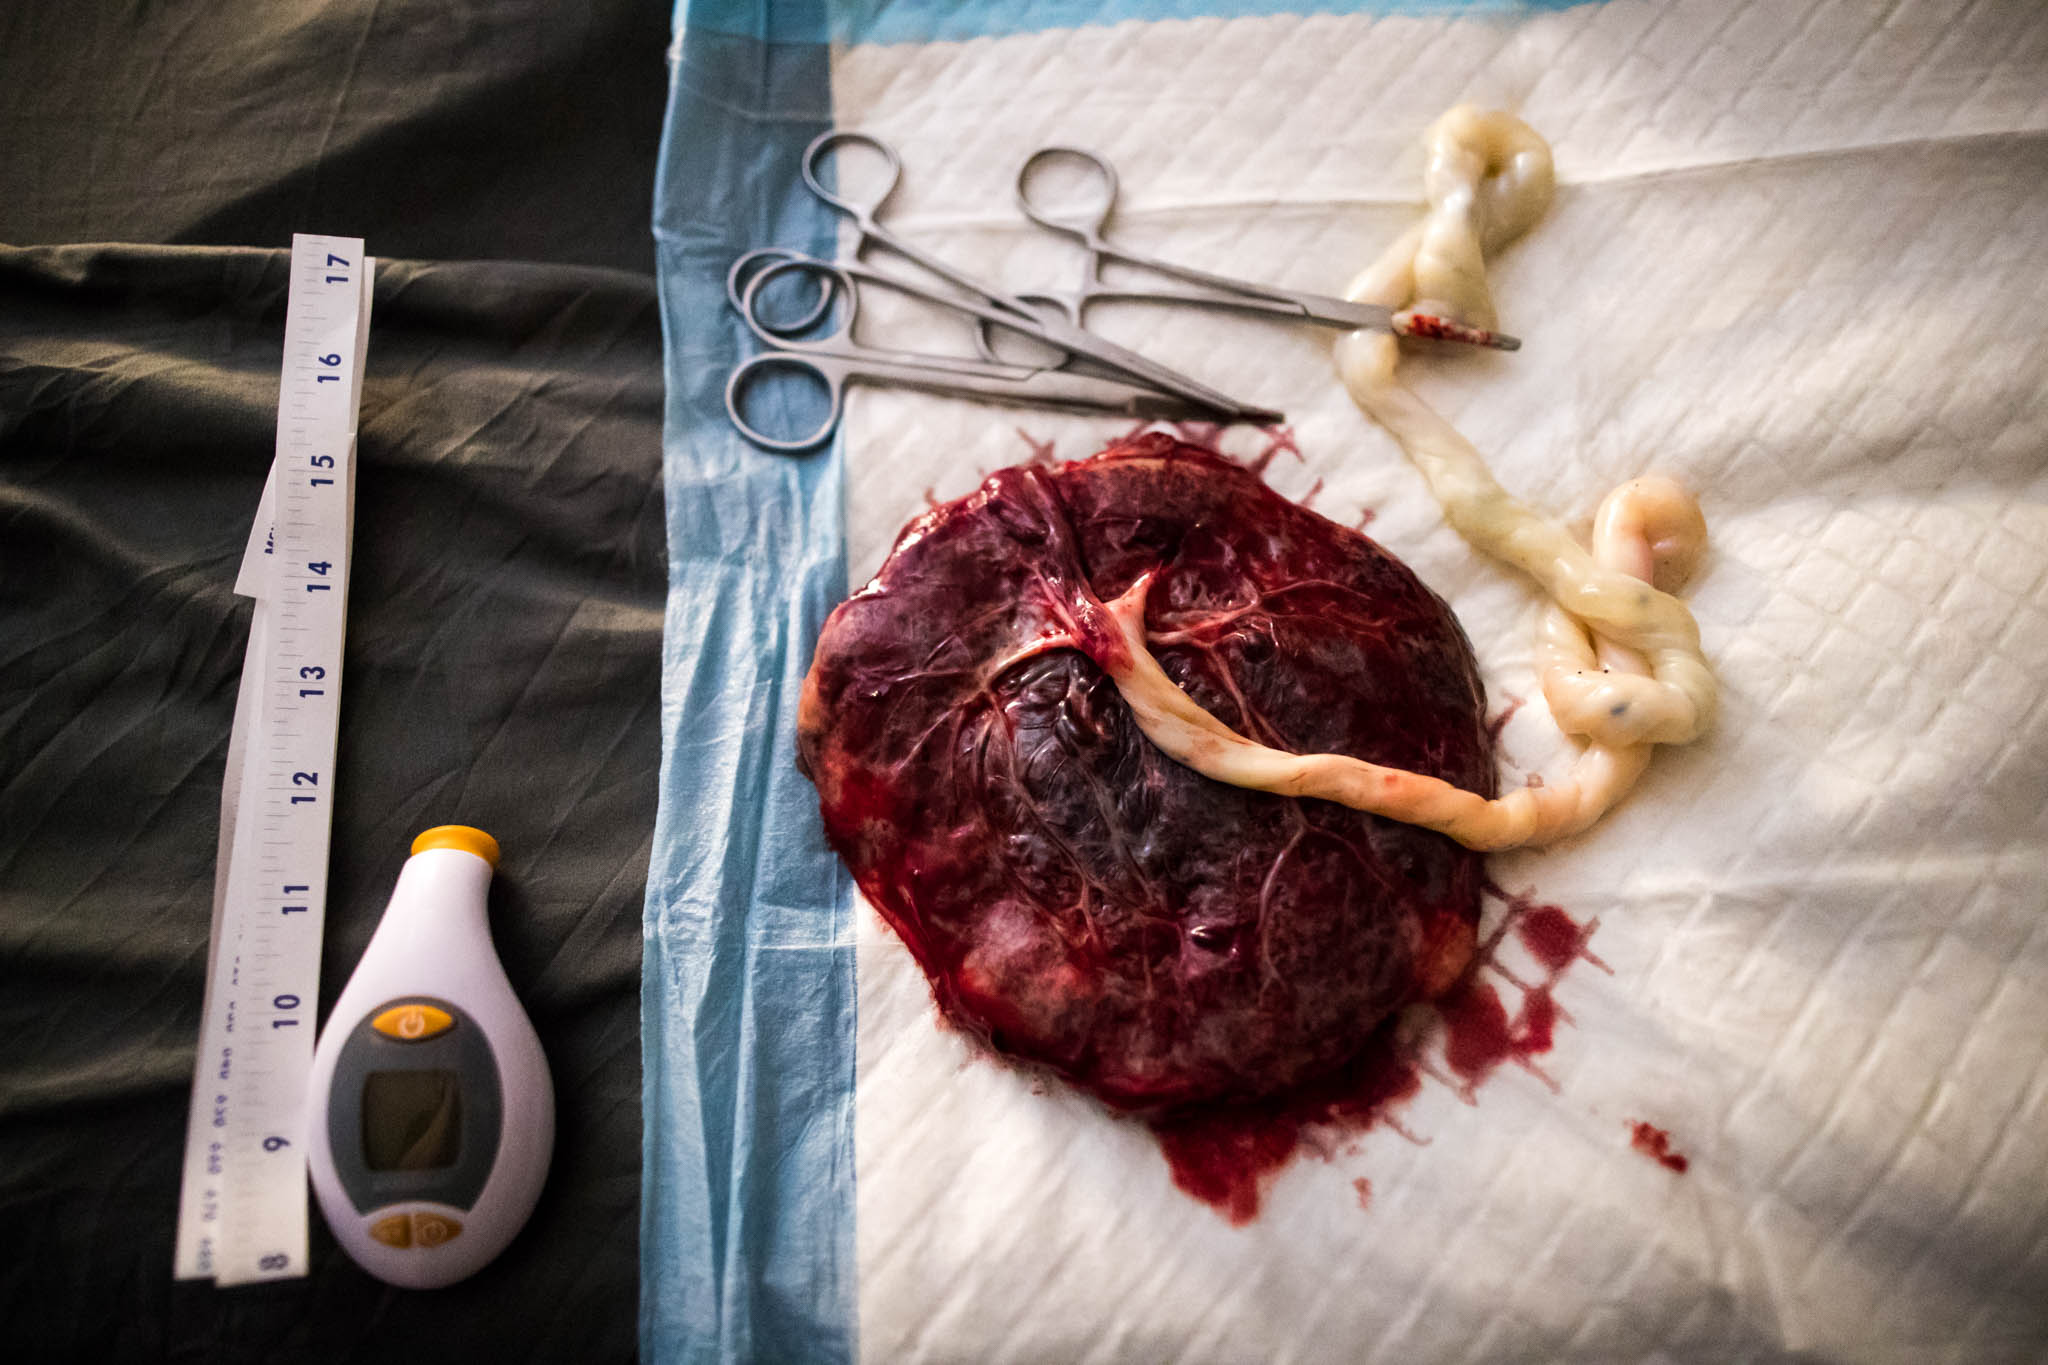 a birth photographer in dallas and forth worth texas, Lawren Rose Photography, takes a photograph of a placenta surrounded by home birth tools and newborn exam tools during a home birth